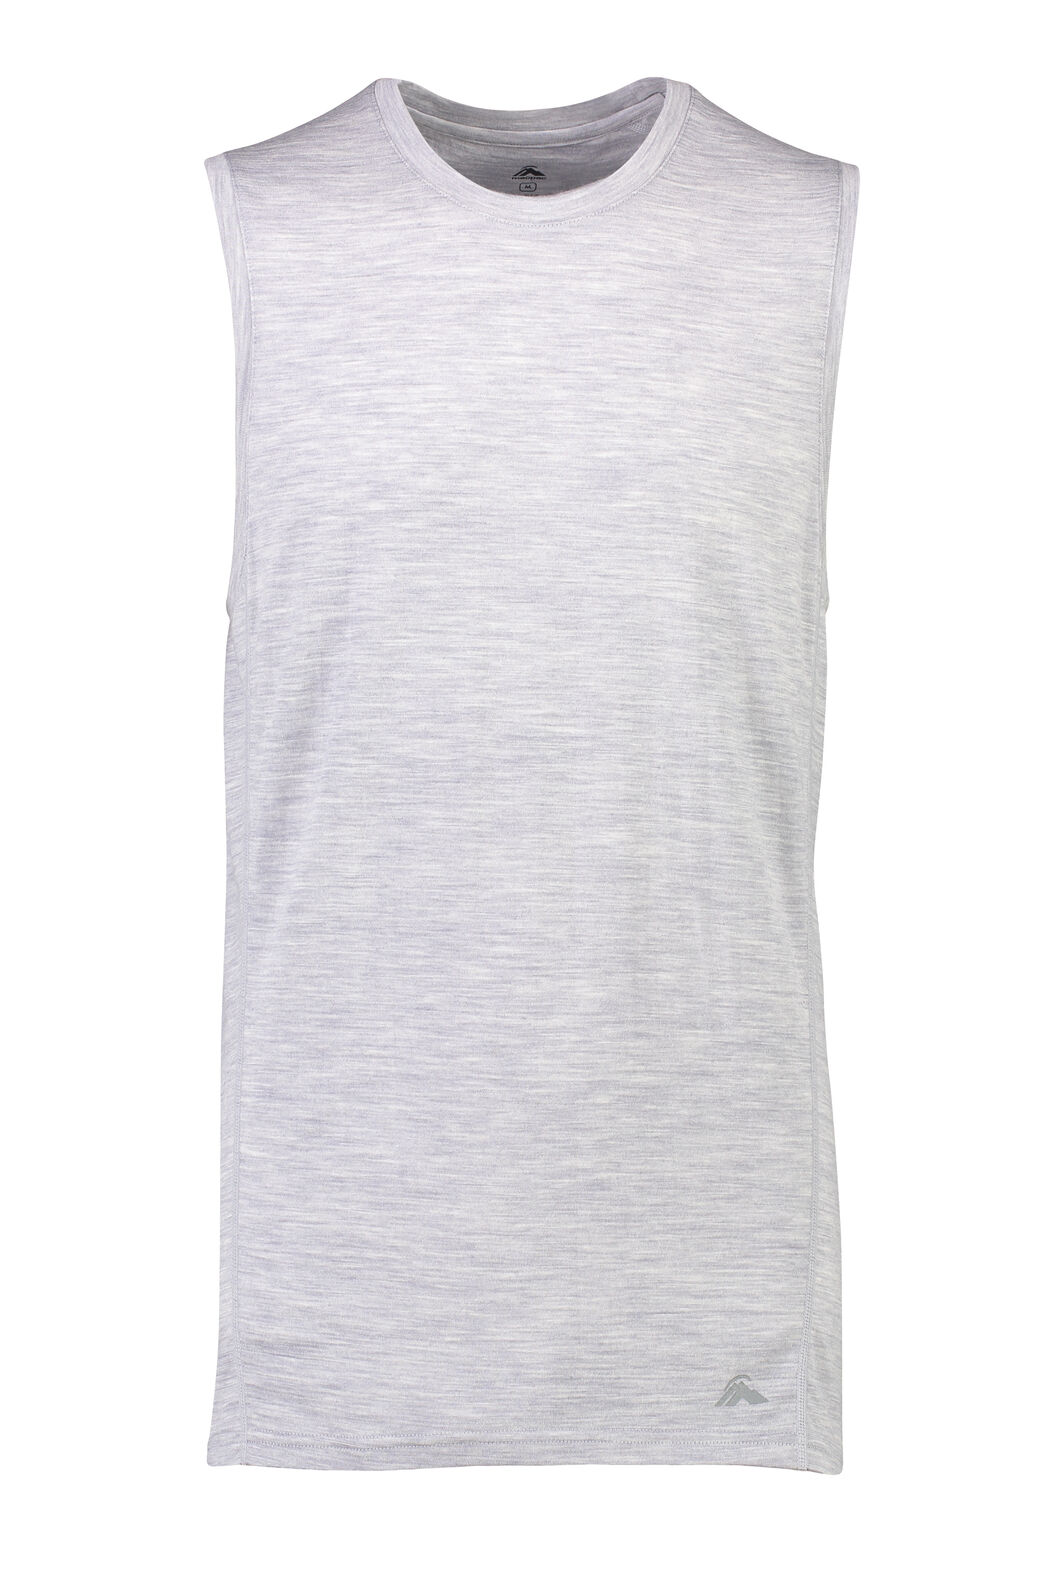 Macpac 150 Merino Singlet — Men's, Light Grey Marle, hi-res